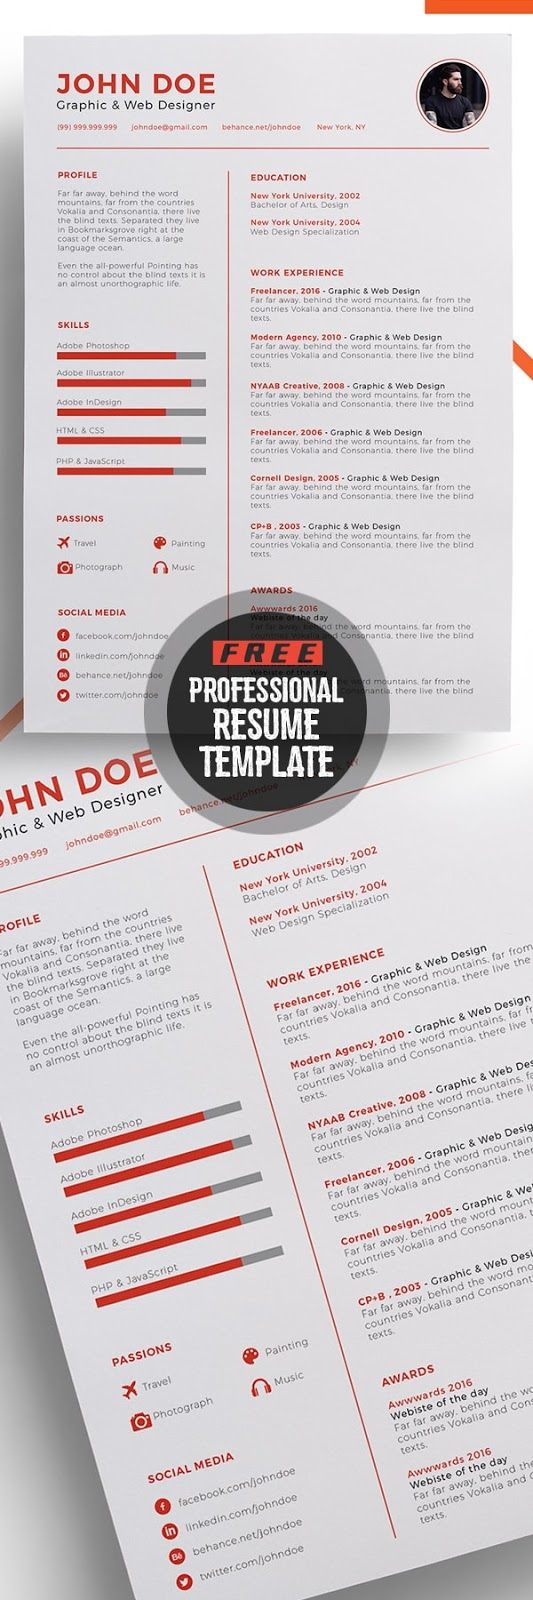 Download Template CV Word 100% Gratis - Free Professional Resume Template Design